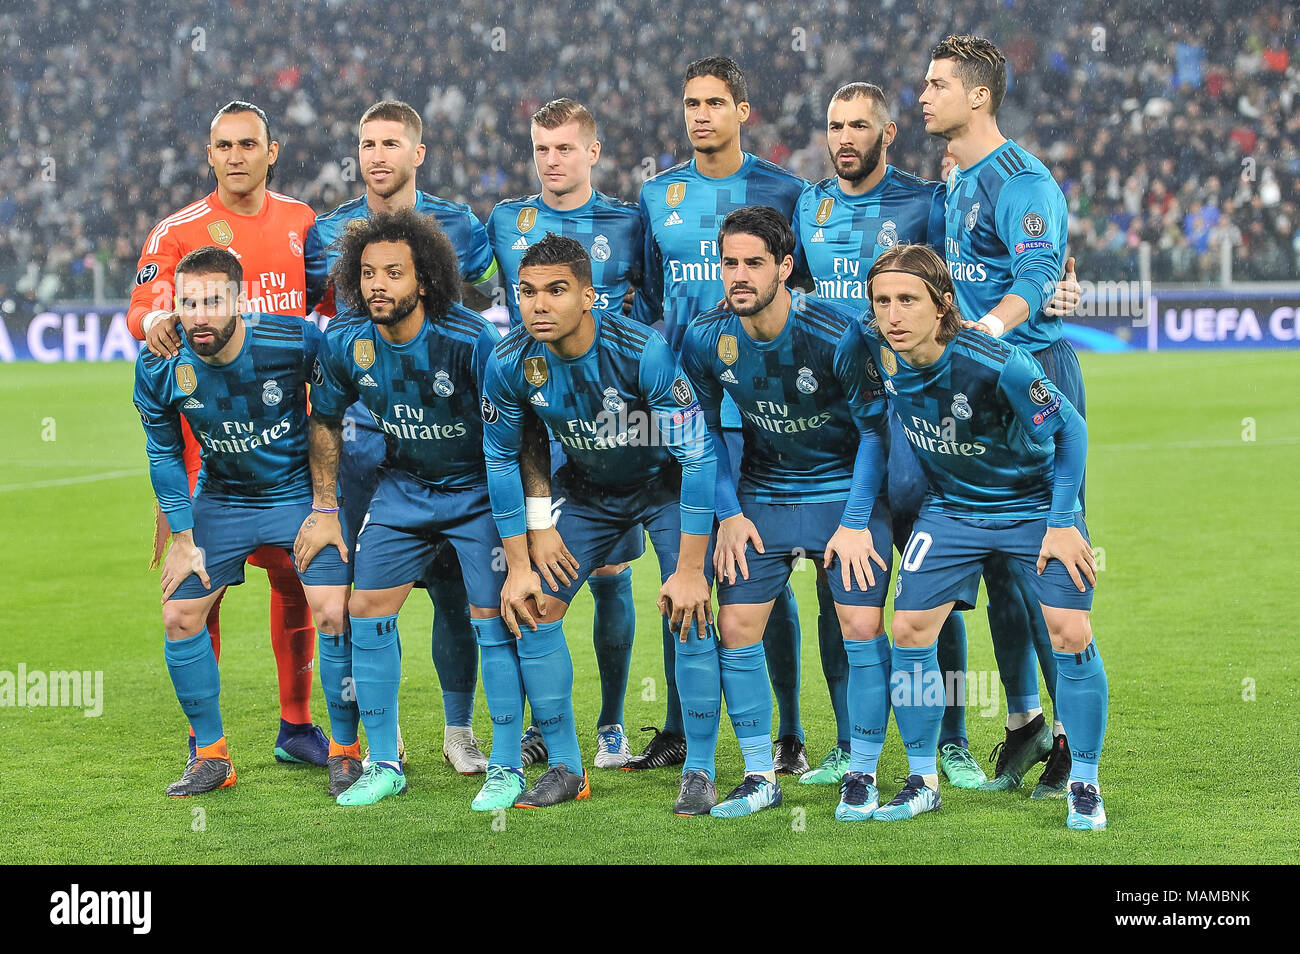 during the UEFA Champions League football match between Juventus FC and Real Madrid CF at Allianz Stadium on 3th April, 2018 in Turin, Italy. - Stock Image